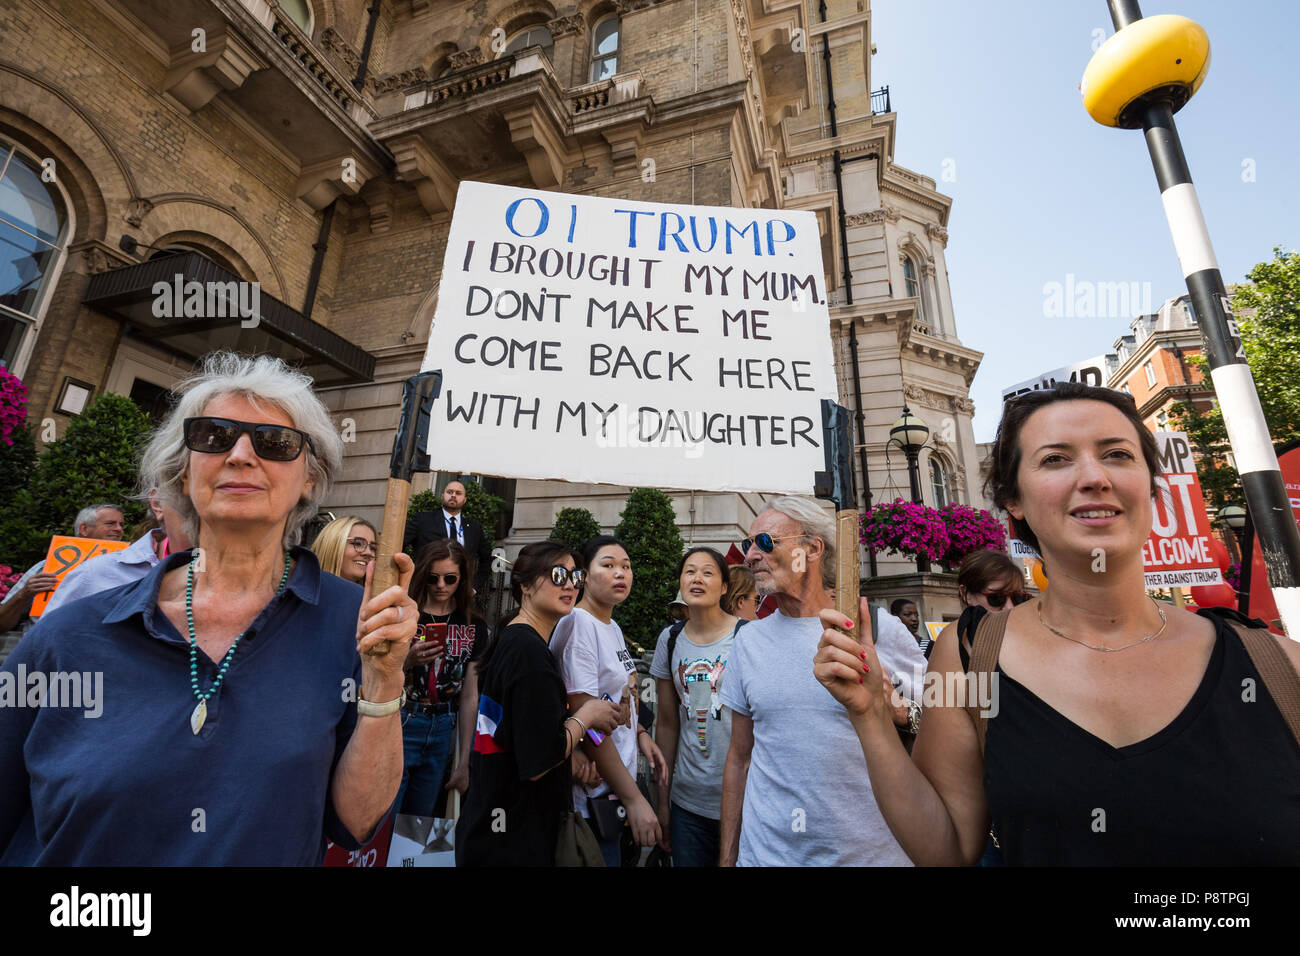 London, UK. 13th July, 2018. Anti-Trump demonstration draws thousands of protesters to the city on the day US president Donald Trump begins his UK visit. Credit: Guy Corbishley/Alamy Live News - Stock Image